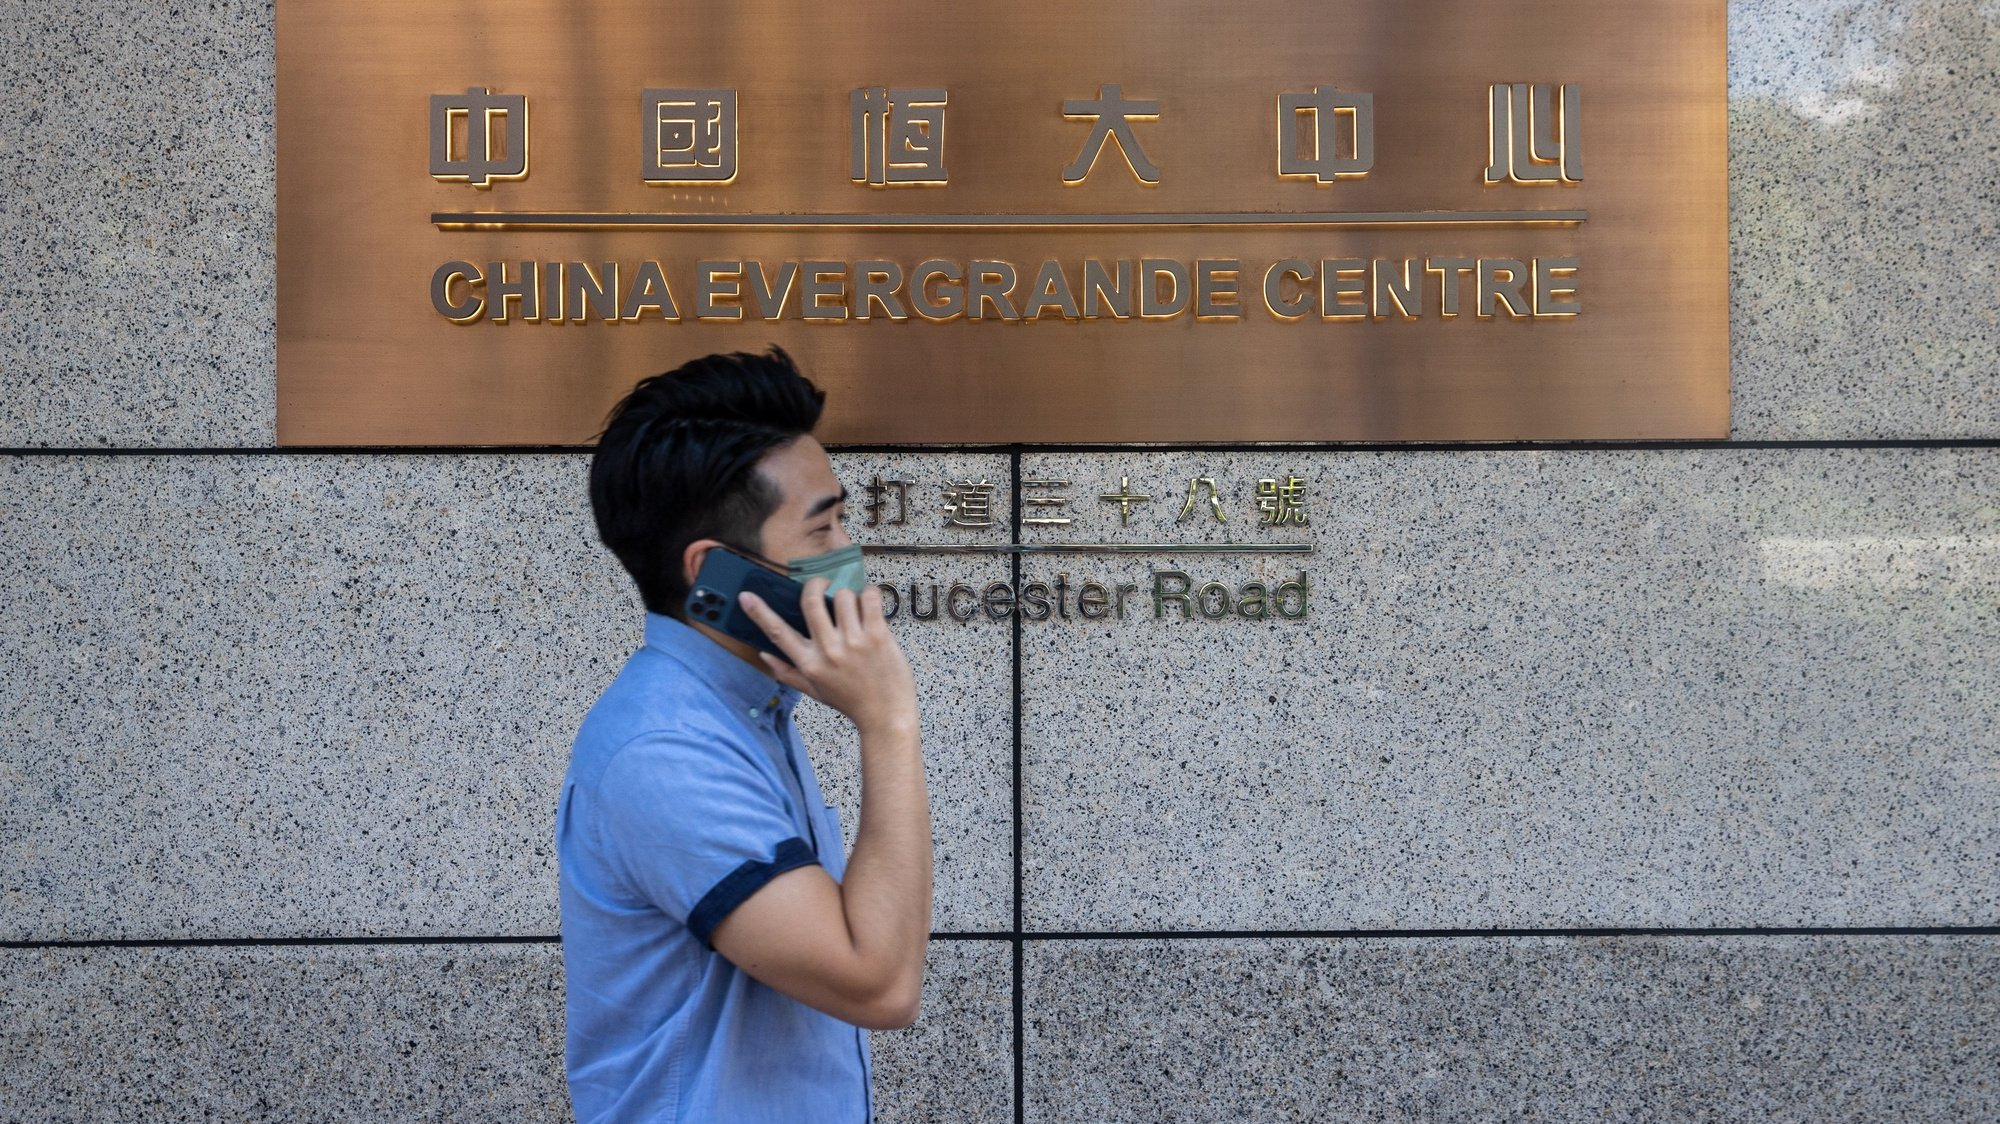 epa09504929 A man walks past the China Evergrande Centre in Hong Kong, China, 04 October 2021. China Evergrande's property management unit suspended shares trading in Hong Kong as the Shenzhen-based company has more than 300 billion US dollar in liabilities.  EPA/JEROME FAVRE